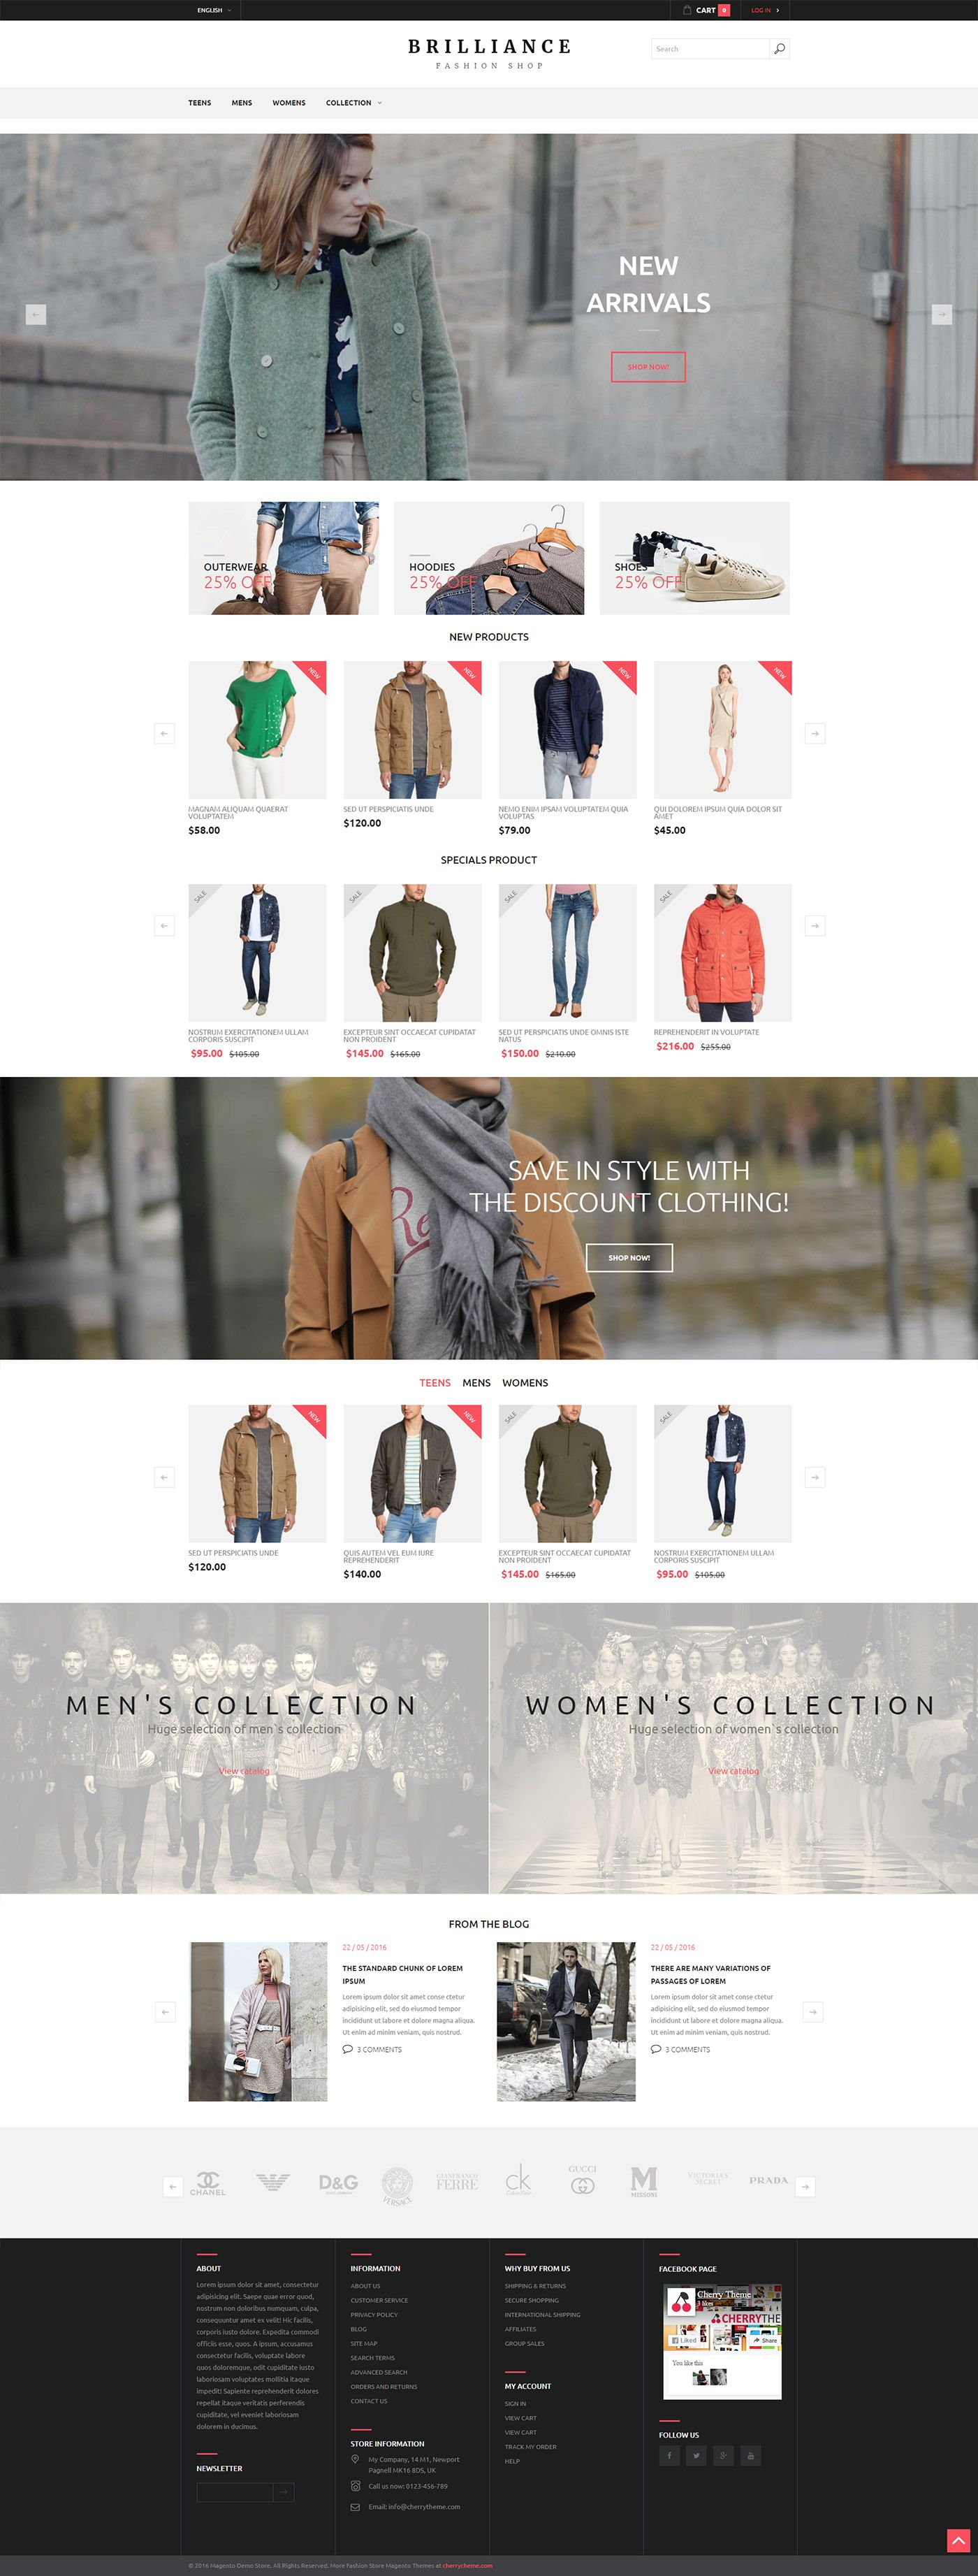 Brilliance Fashion Shop  Responsive Magento Theme Screenshot 2